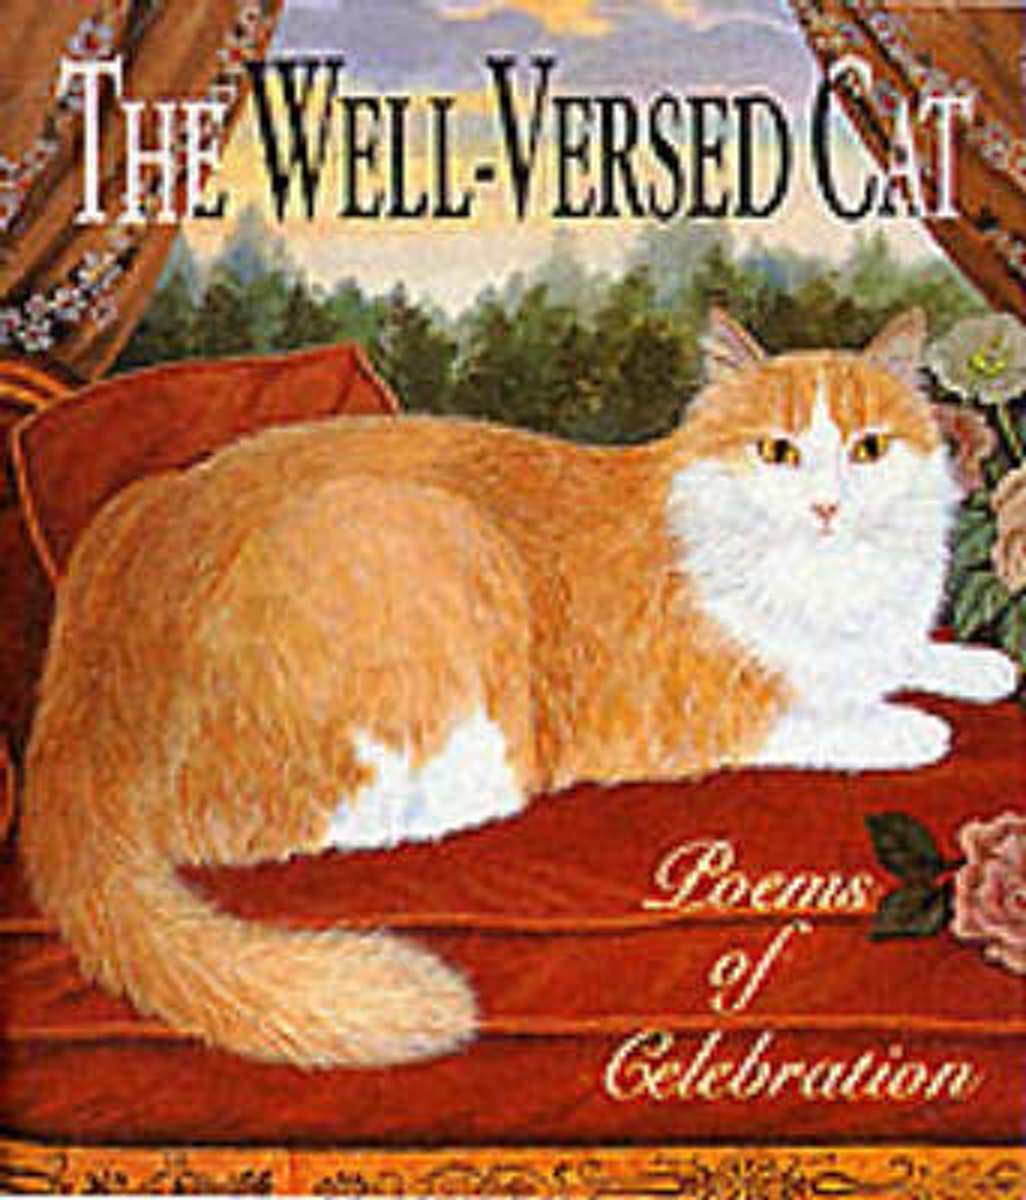 The Well-versed Cat